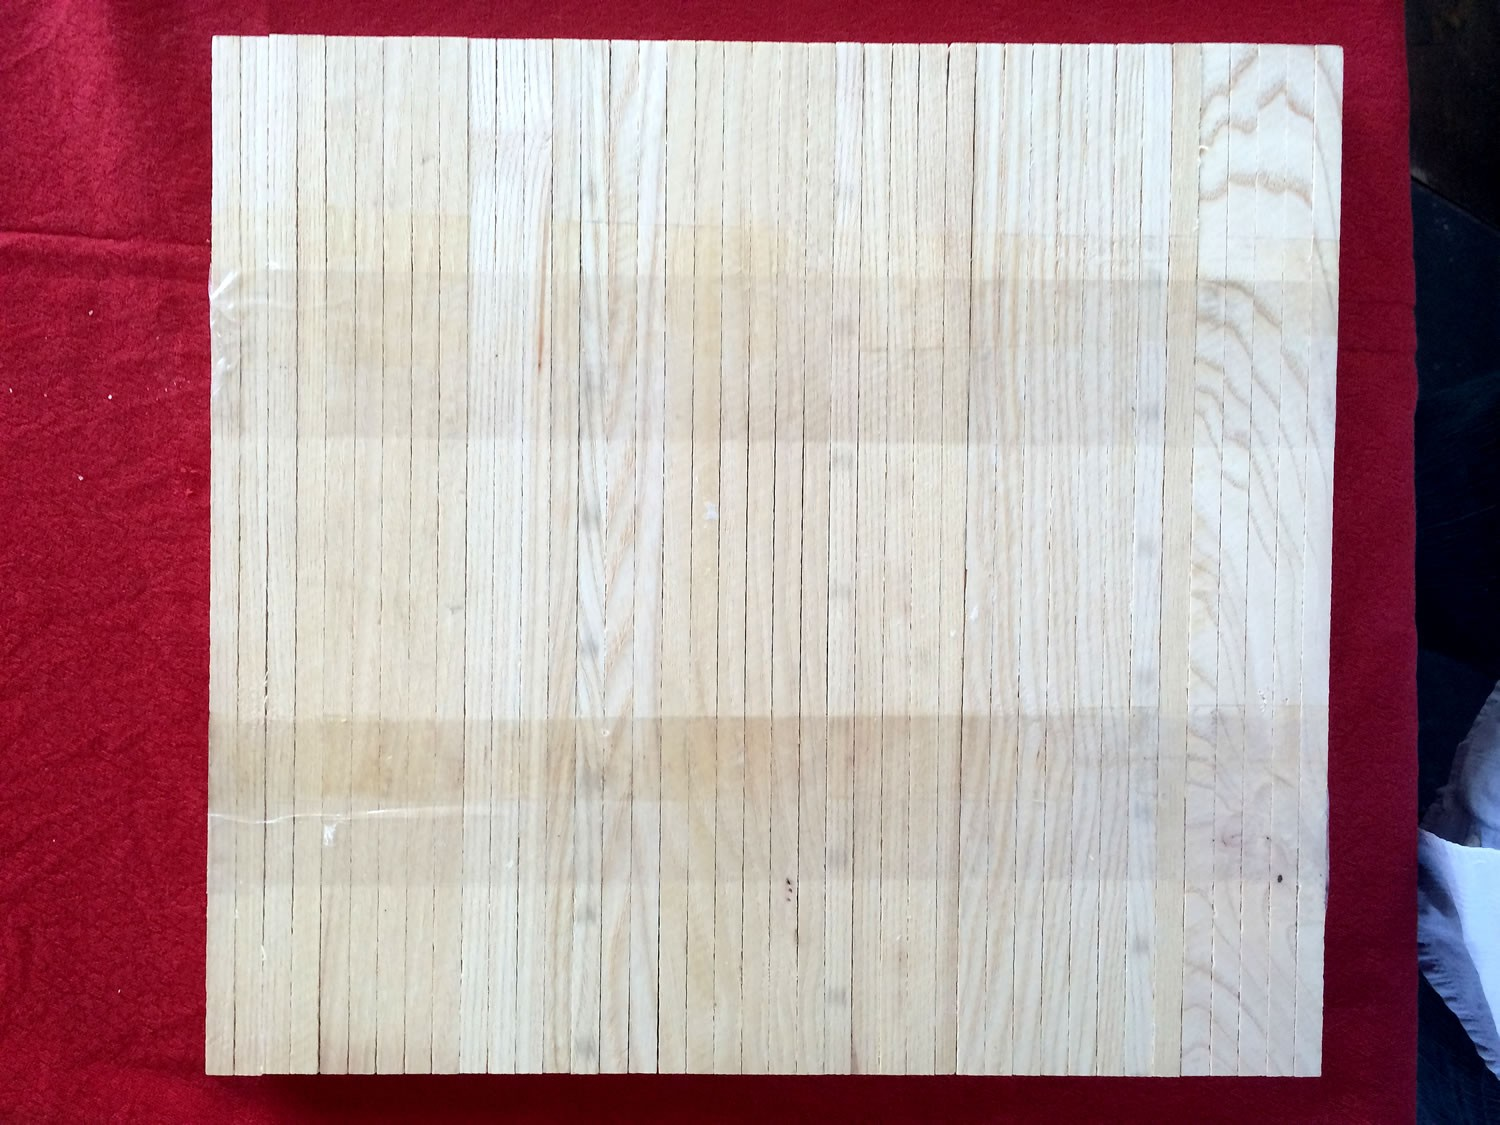 Parquet Industriel Frene - 23 x 8 x 160 mm sur chants massif